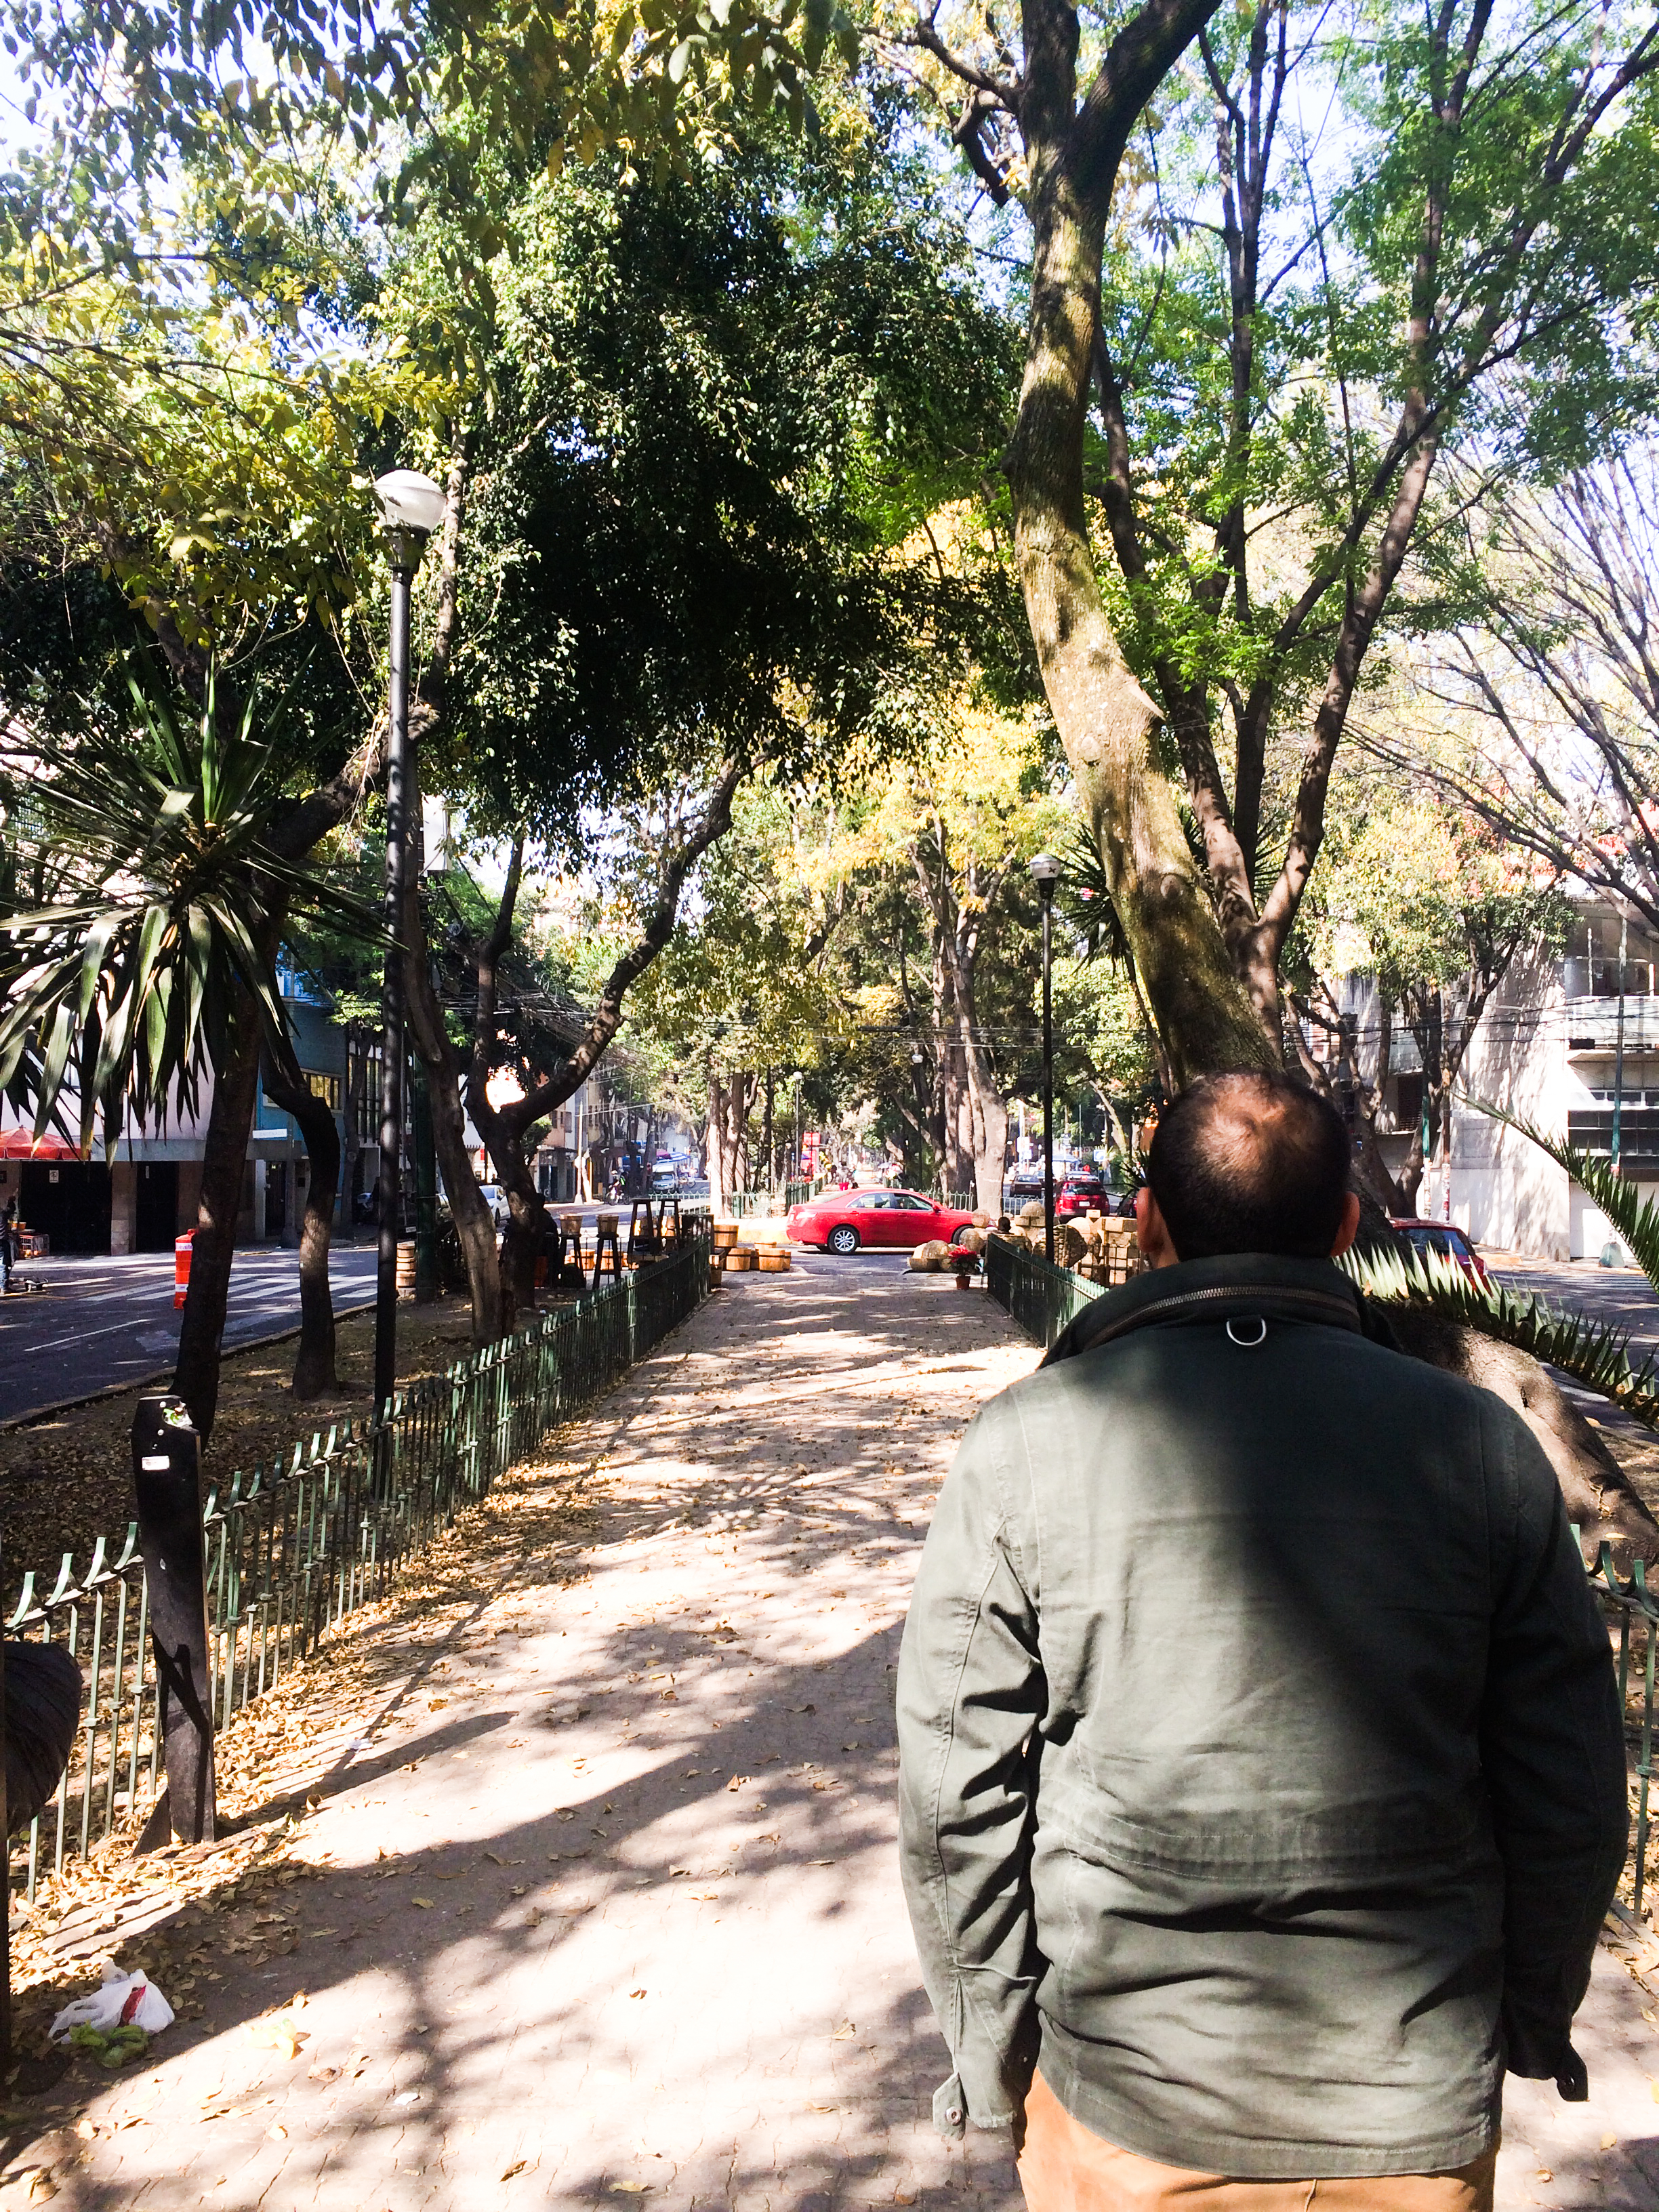 Strolling down a tree lined thoroughfare in the middle of street. This is the definition of pedestrian friendly. We spent a lot of time just people watching and walking.